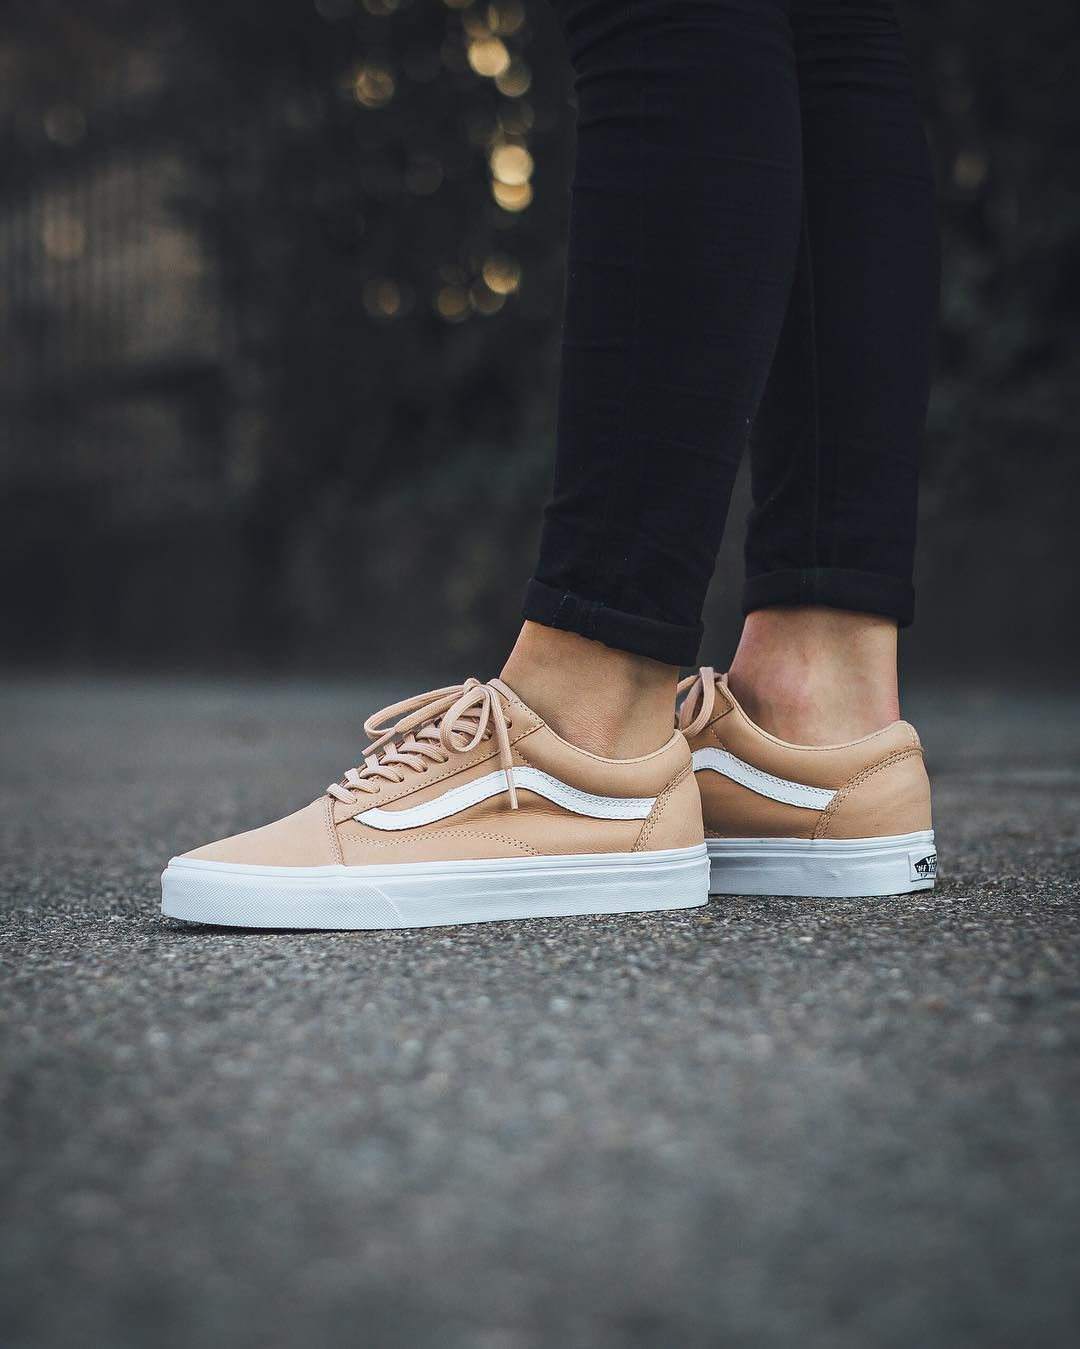 vans old skool toasted almond